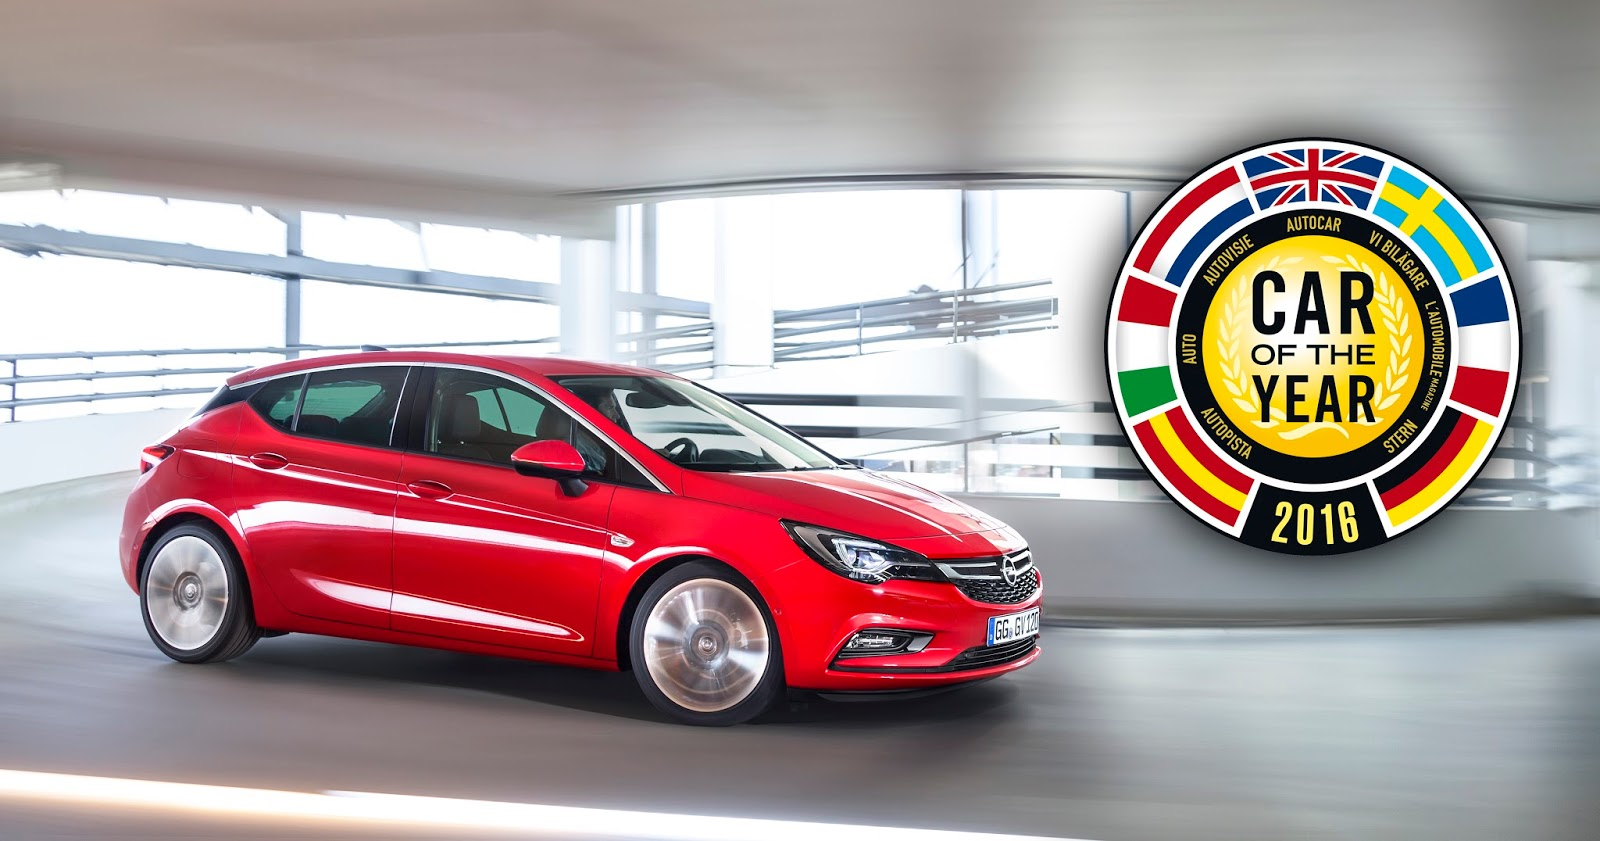 Opel Astra Car of the Year 2016 298789